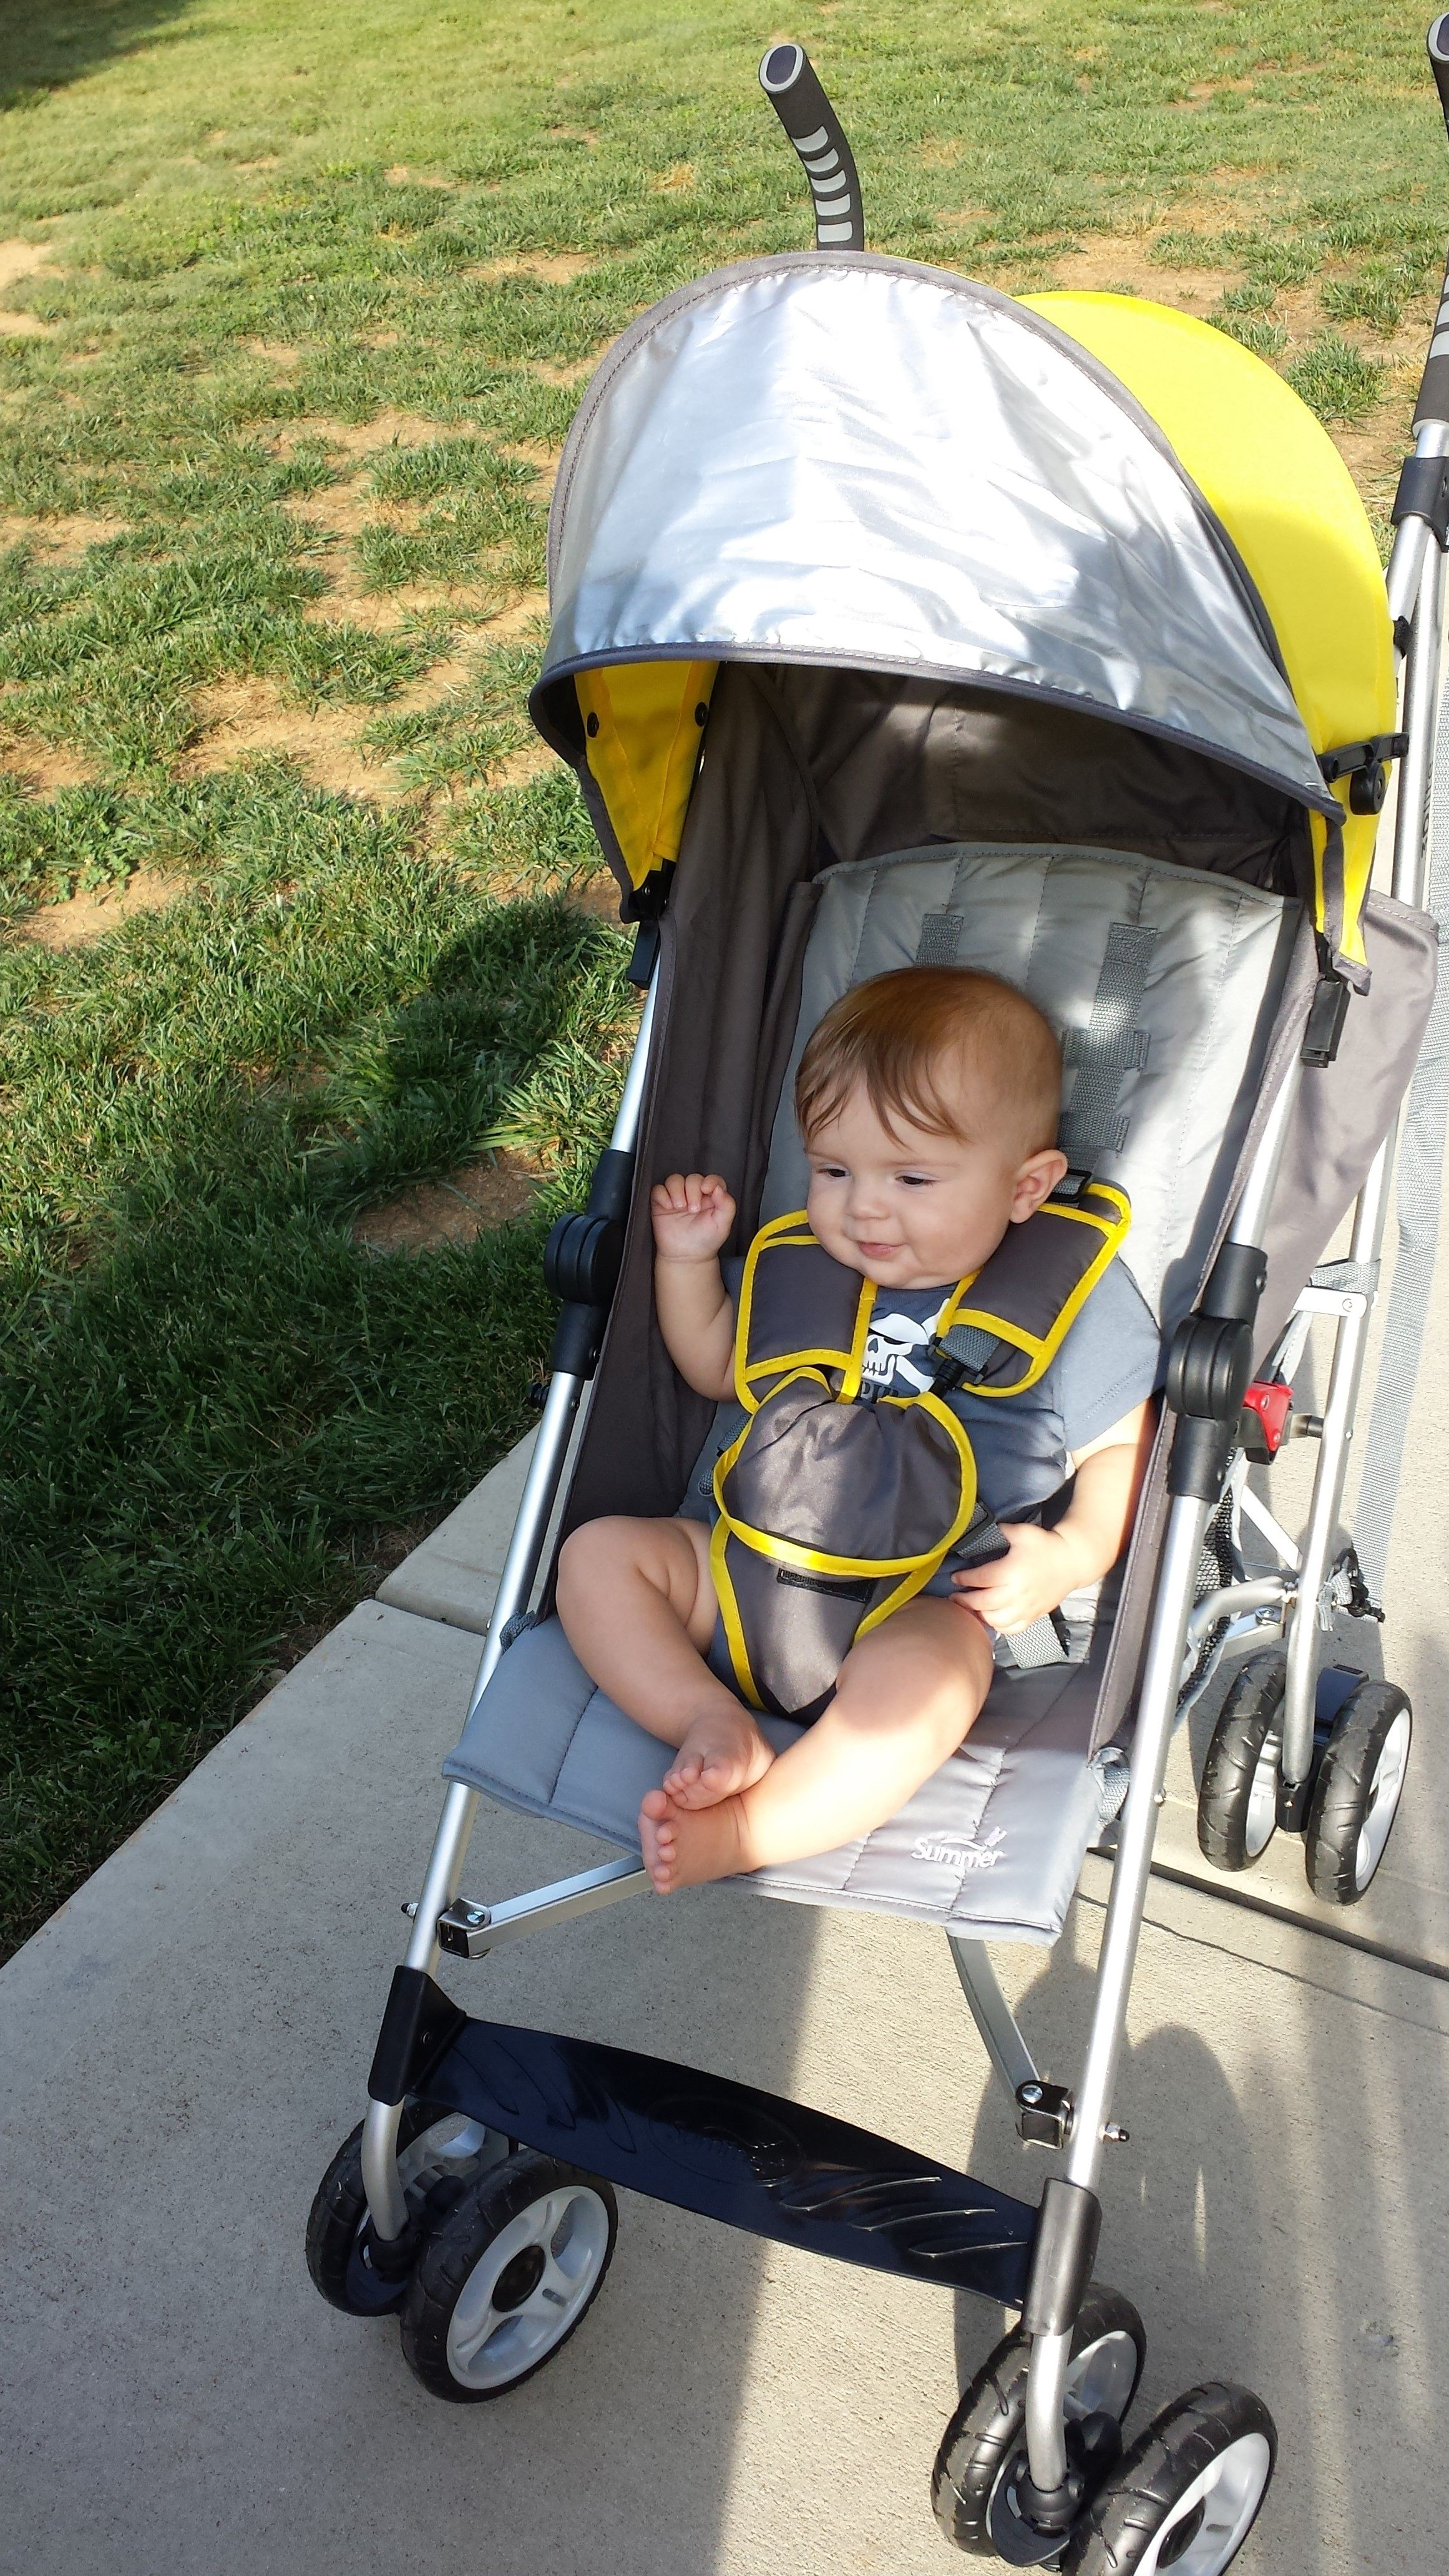 Onthego w/ baby? Place items in the basket below your